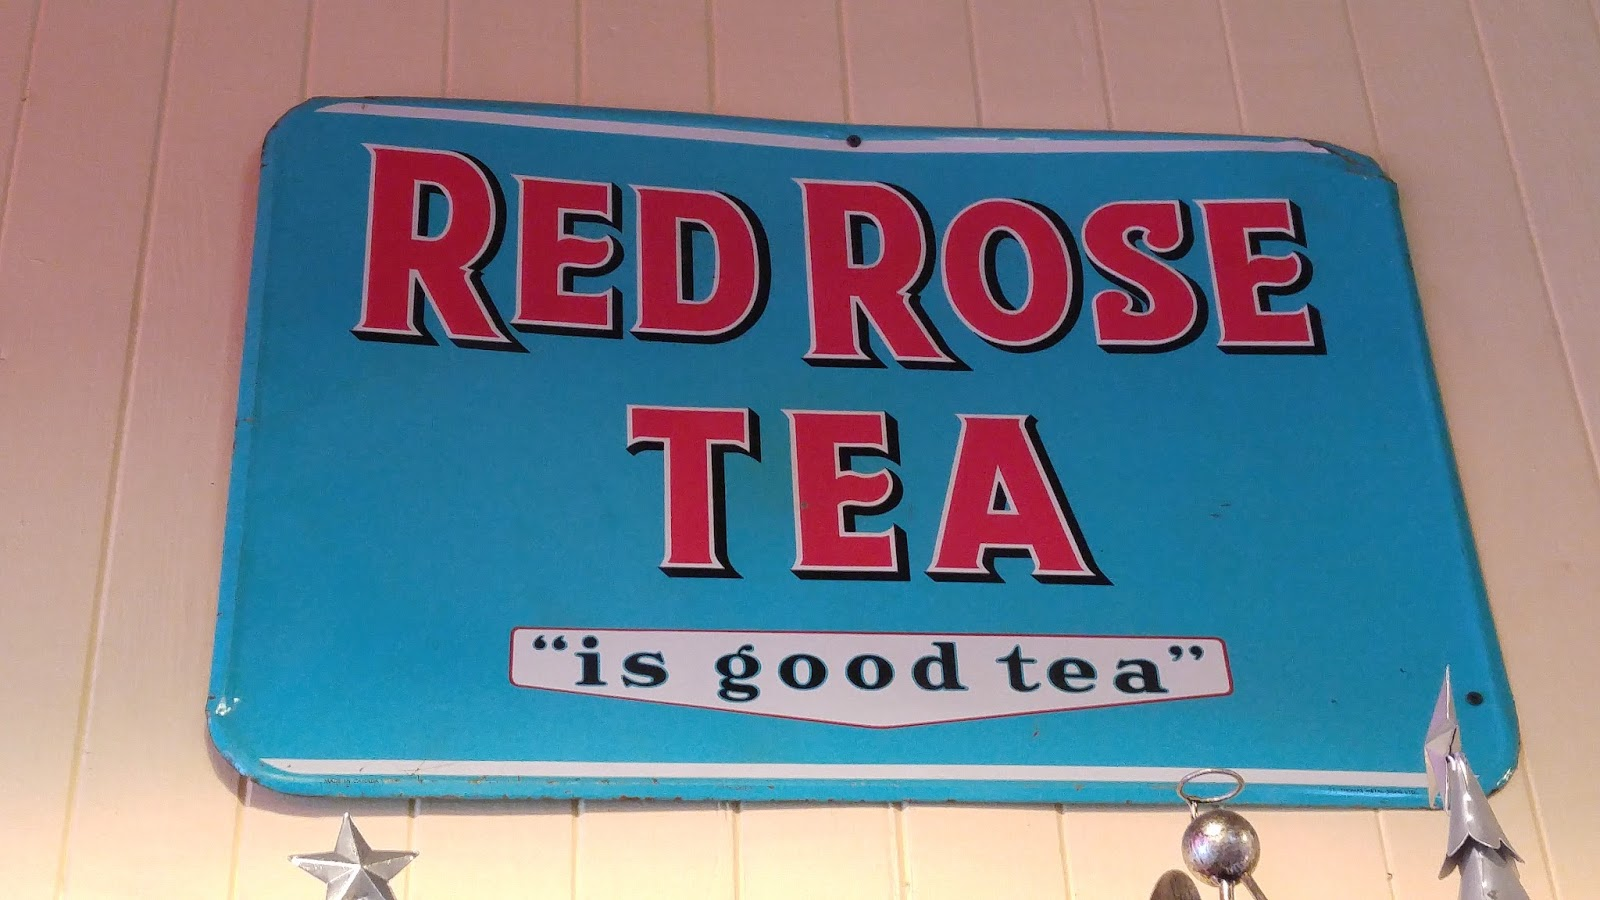 The World Of Jek April Sign Of The Month Red Rose Tea. State Of New Jersey Insurance. San Diego Window Washing Reverse Mortgage Fha. Personal Training Certification Az. Tax Deferred Annuity Calculator. Adult Degree Completion Program. Verisign Class 3 Extended Validation Ssl Ca. Family Life Promotional Code Adult On Line. Phone Credit Card Reader Reviews